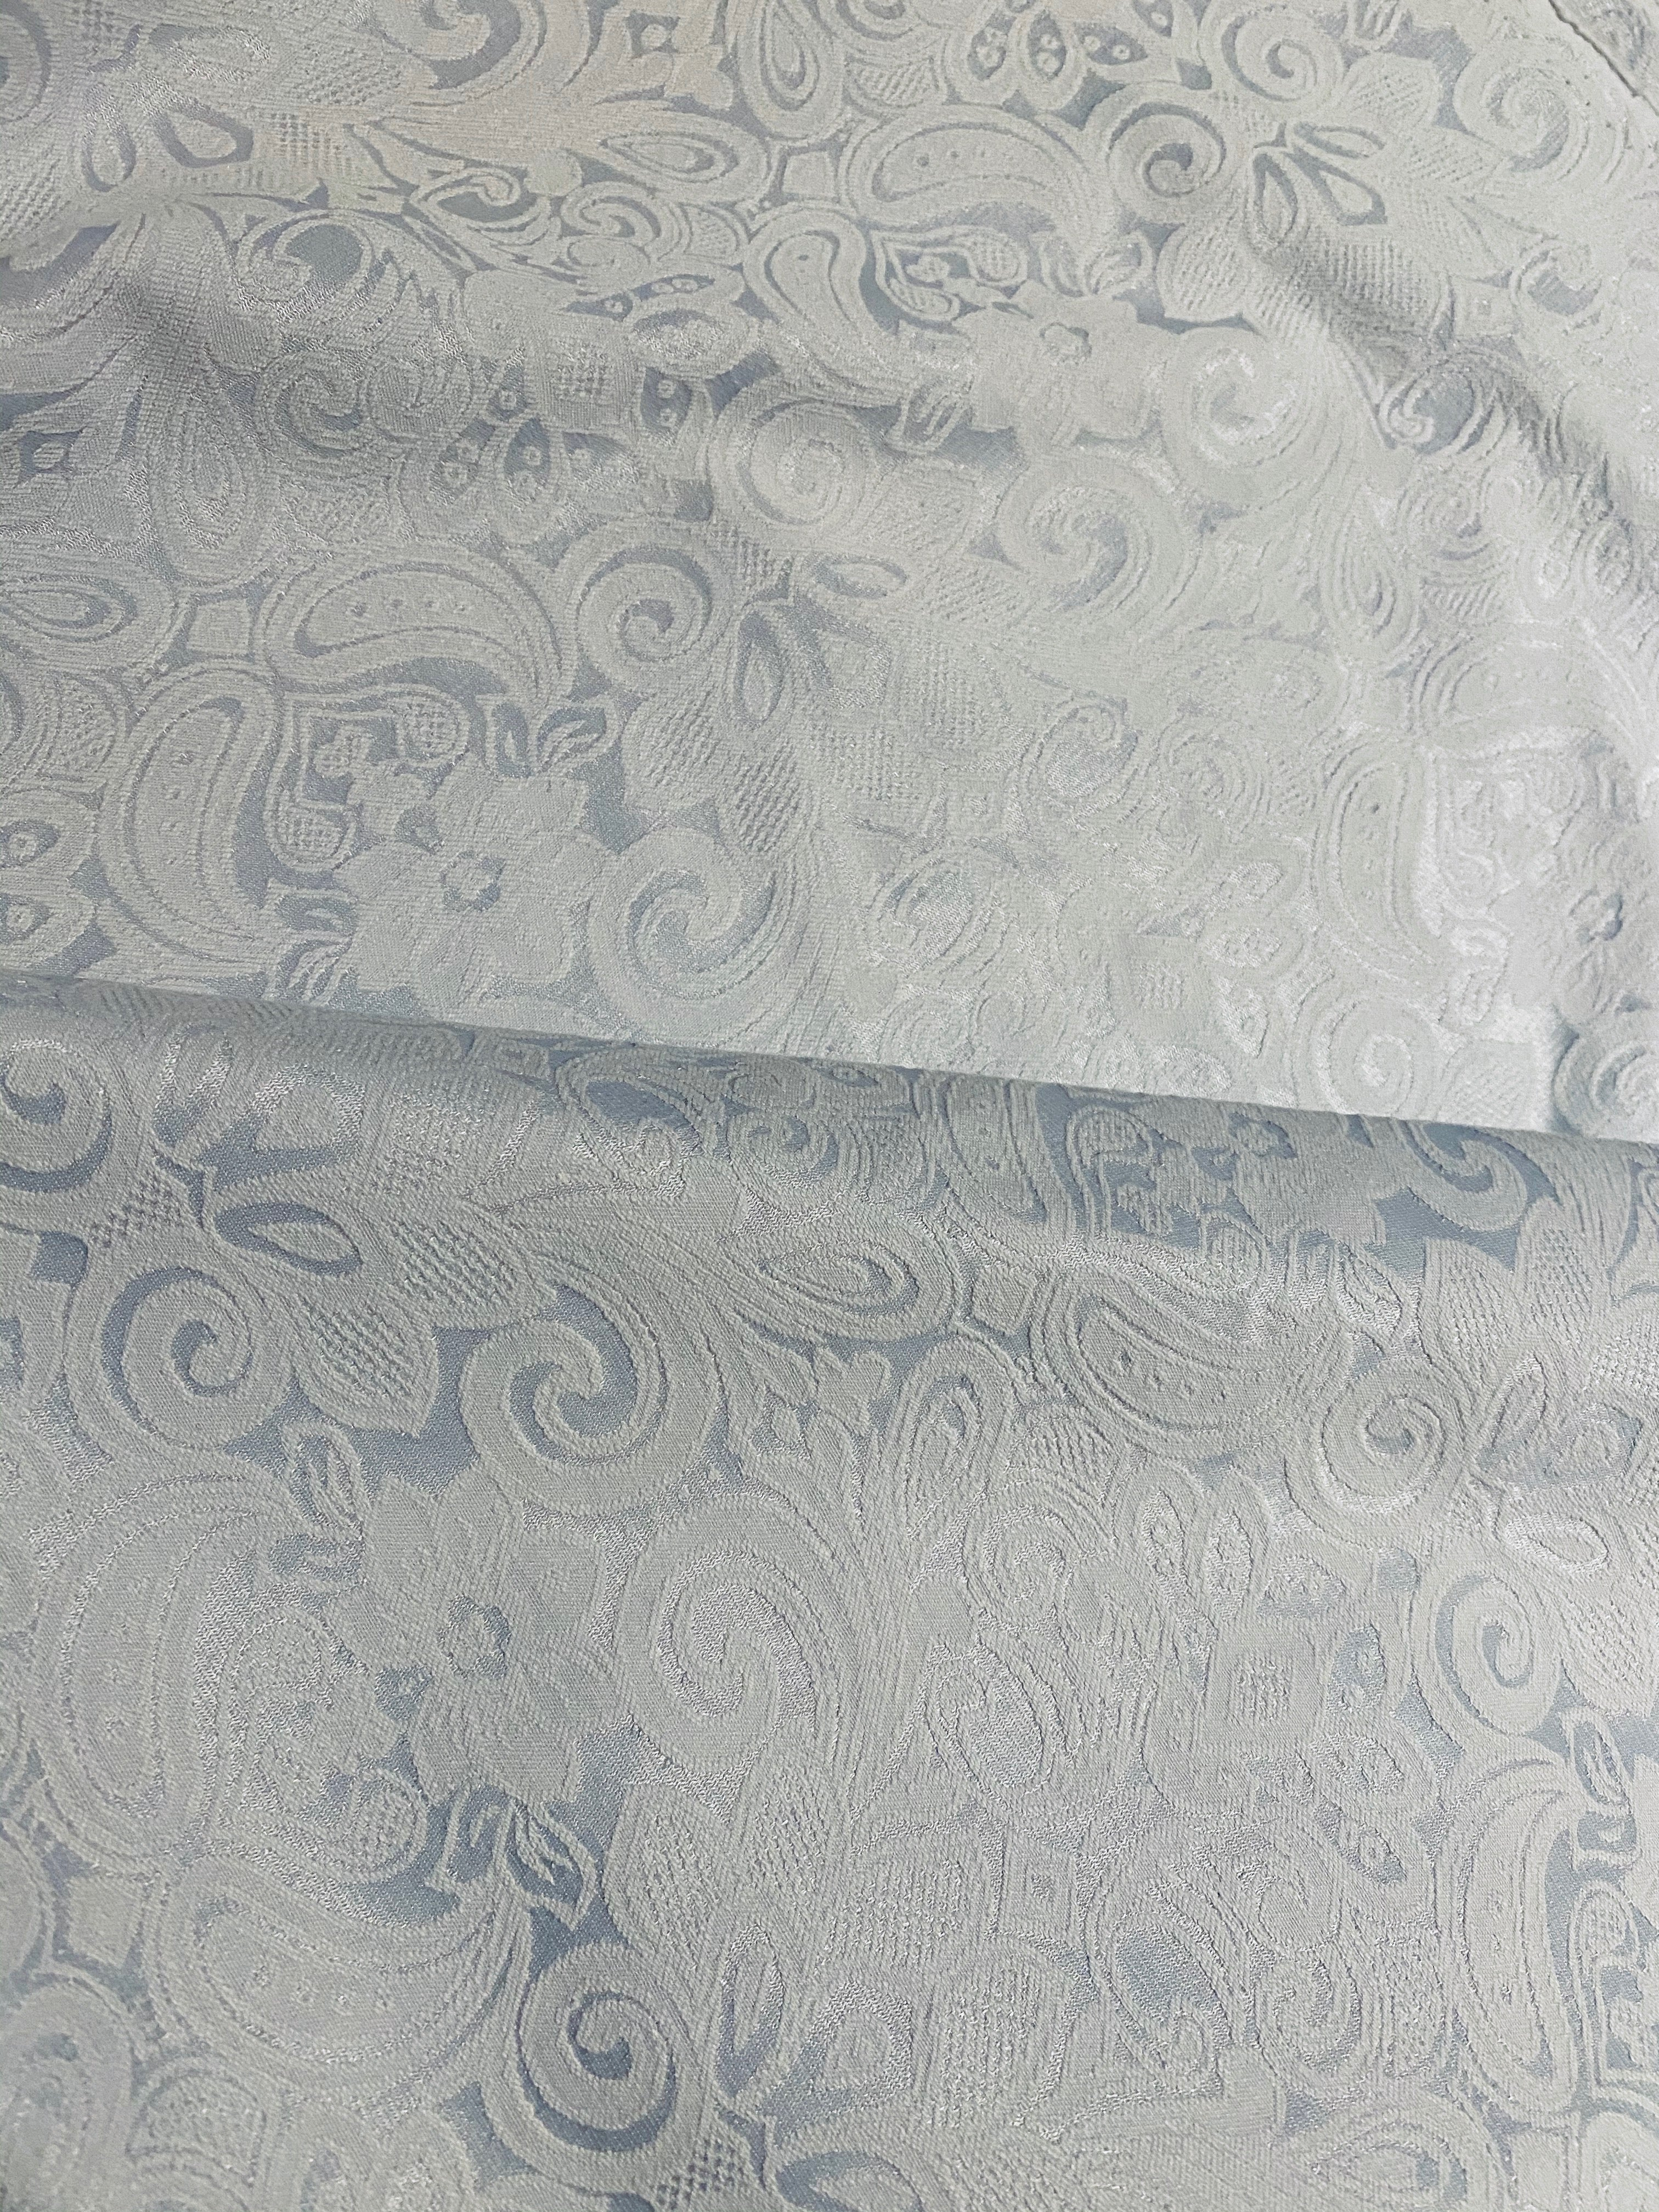 NEW Pincess Emmeline Stretch Cotton, Silk, Lycra Sateen Fabric with Brocade Damask Pattern